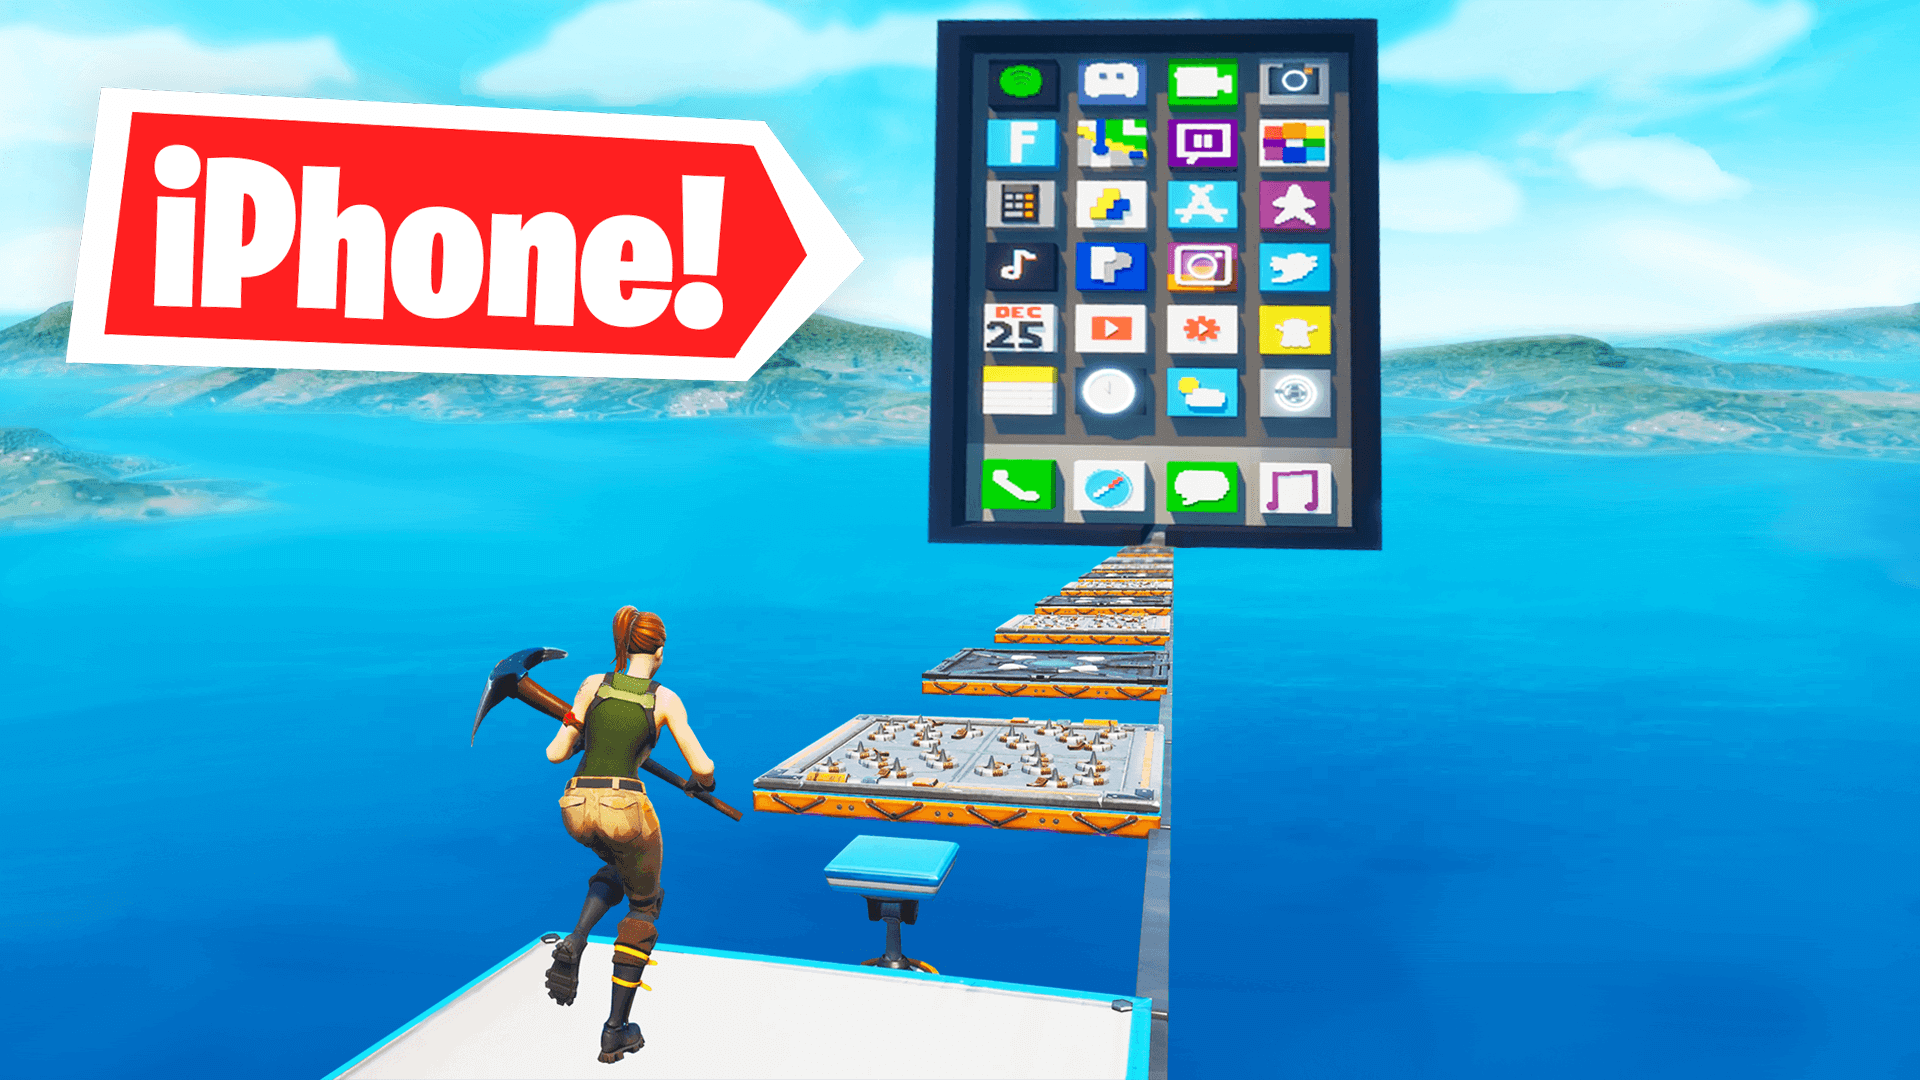 GIANT IPHONE DEATHRUN! - Fortnite Creative Codes - Dropnite com